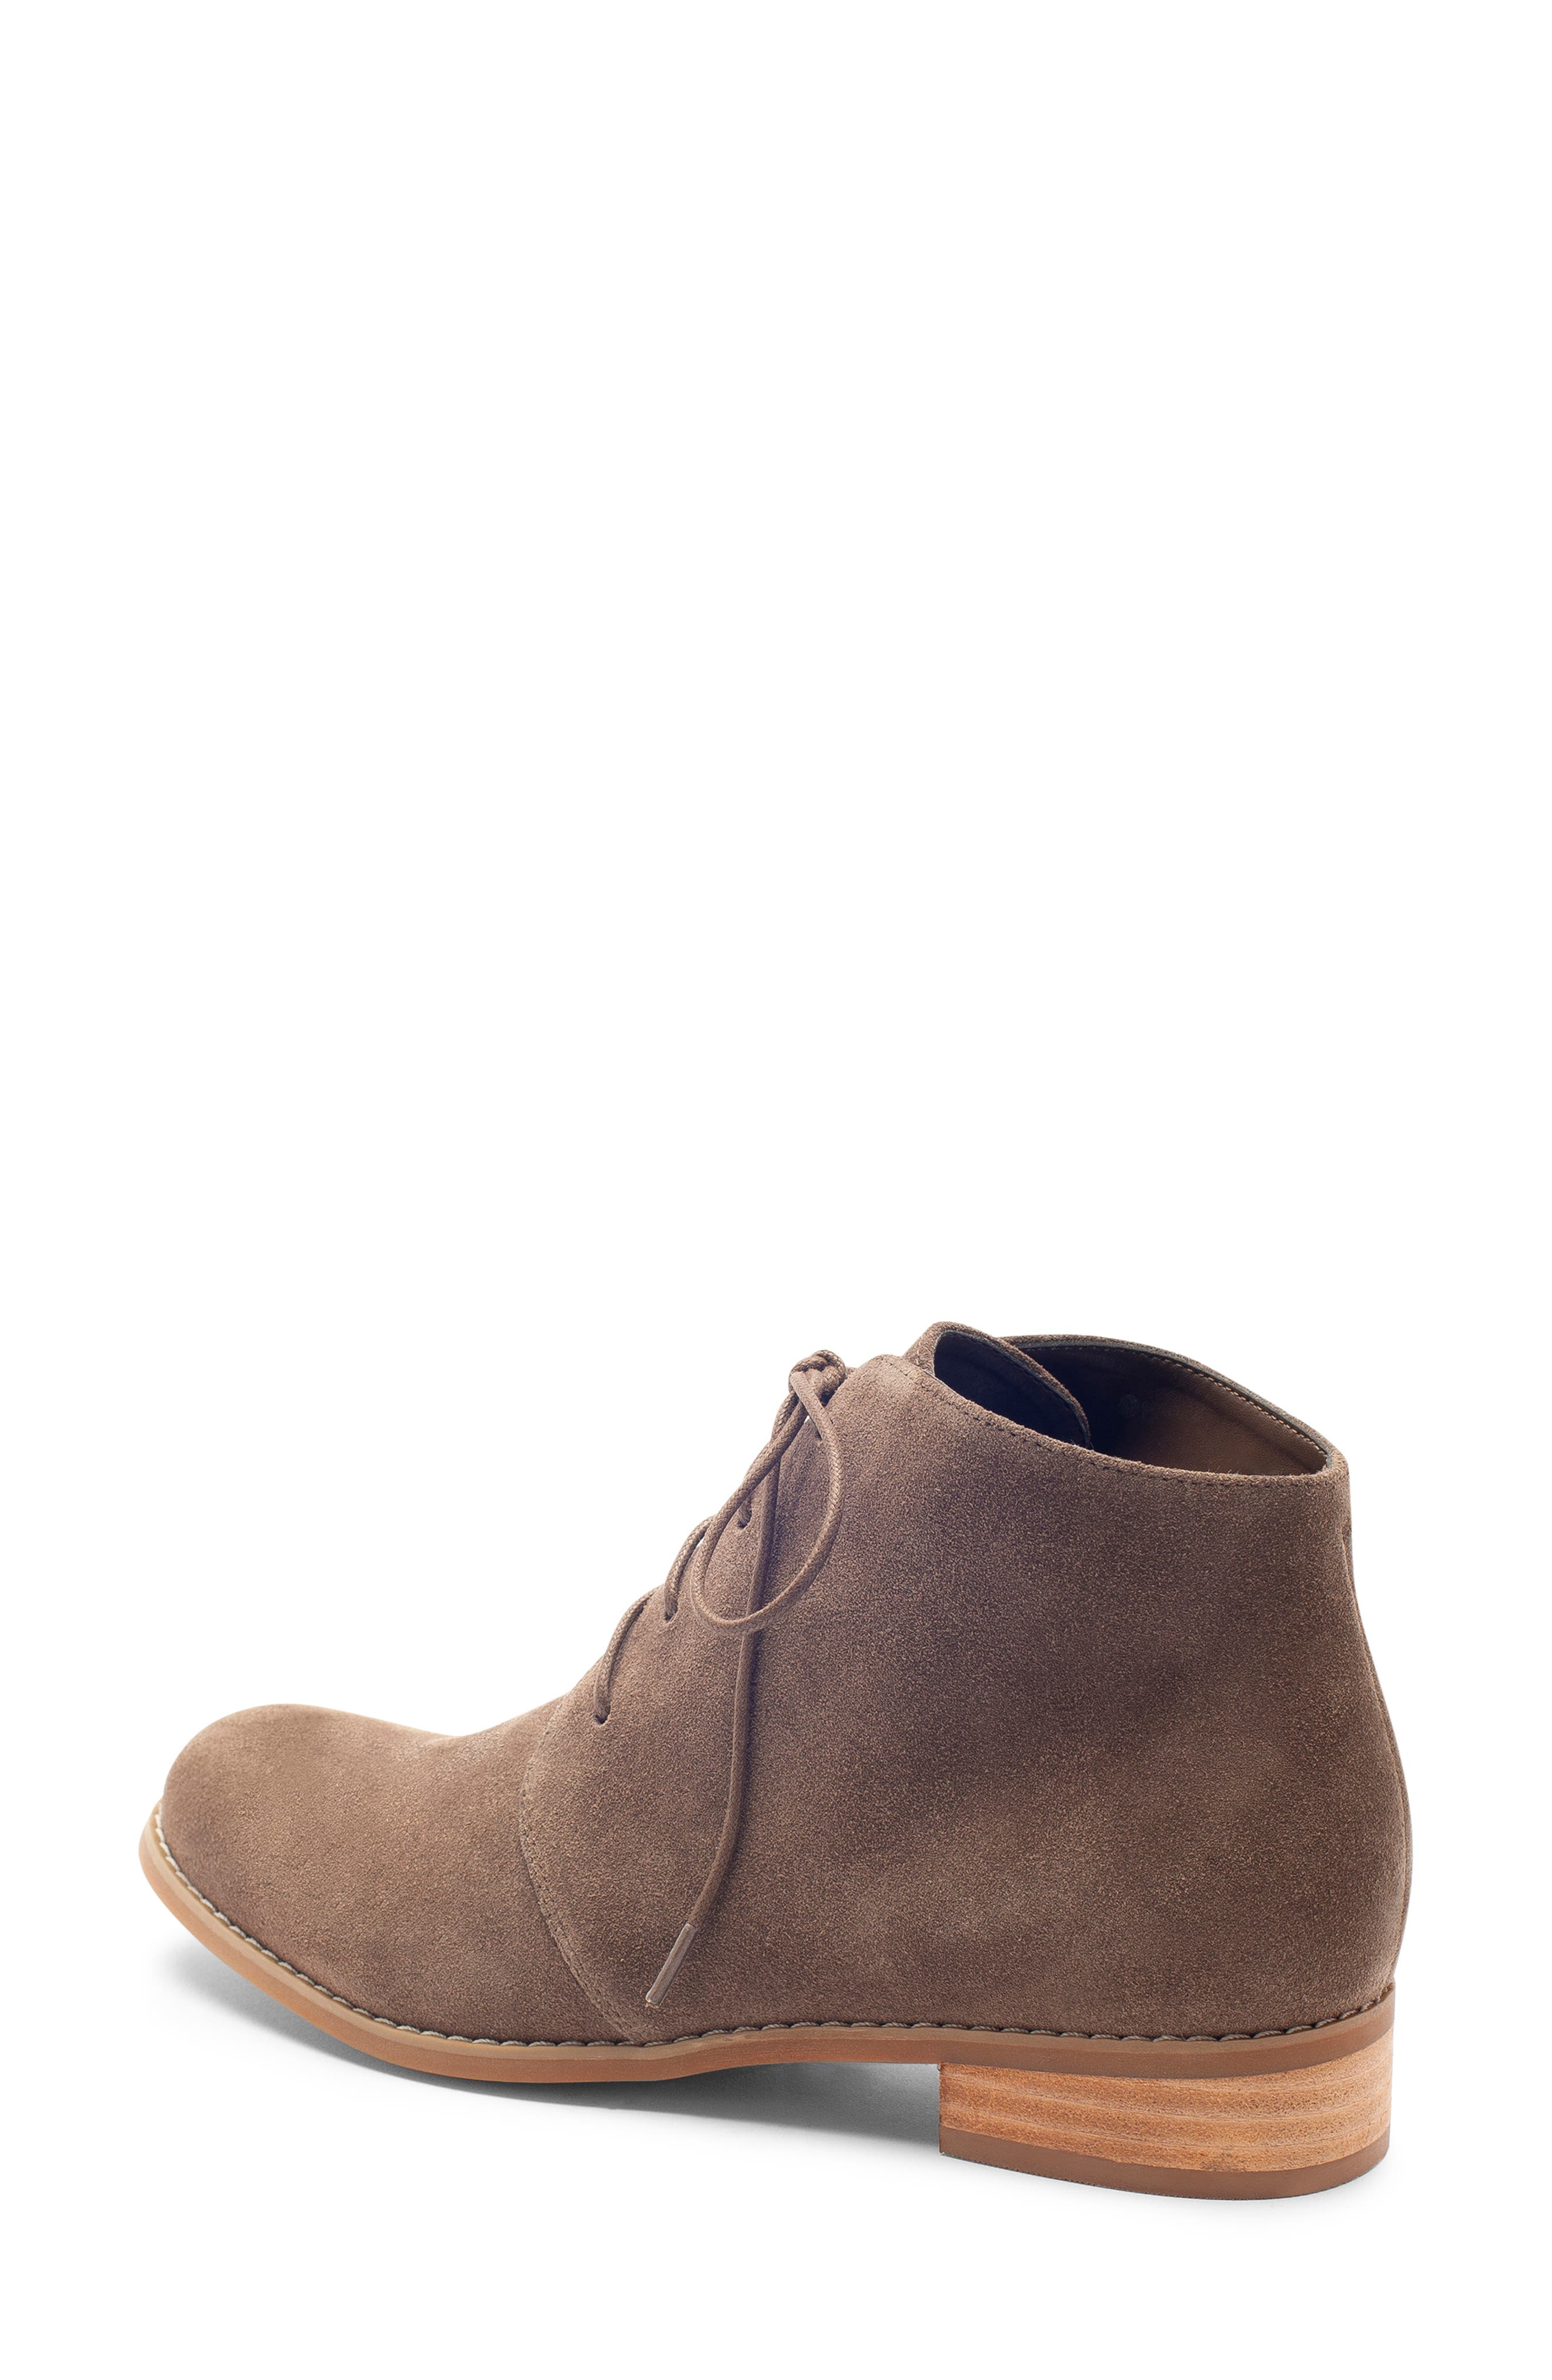 Rayann Waterproof Desert Boot,                             Alternate thumbnail 2, color,                             DARK TAUPE SUEDE